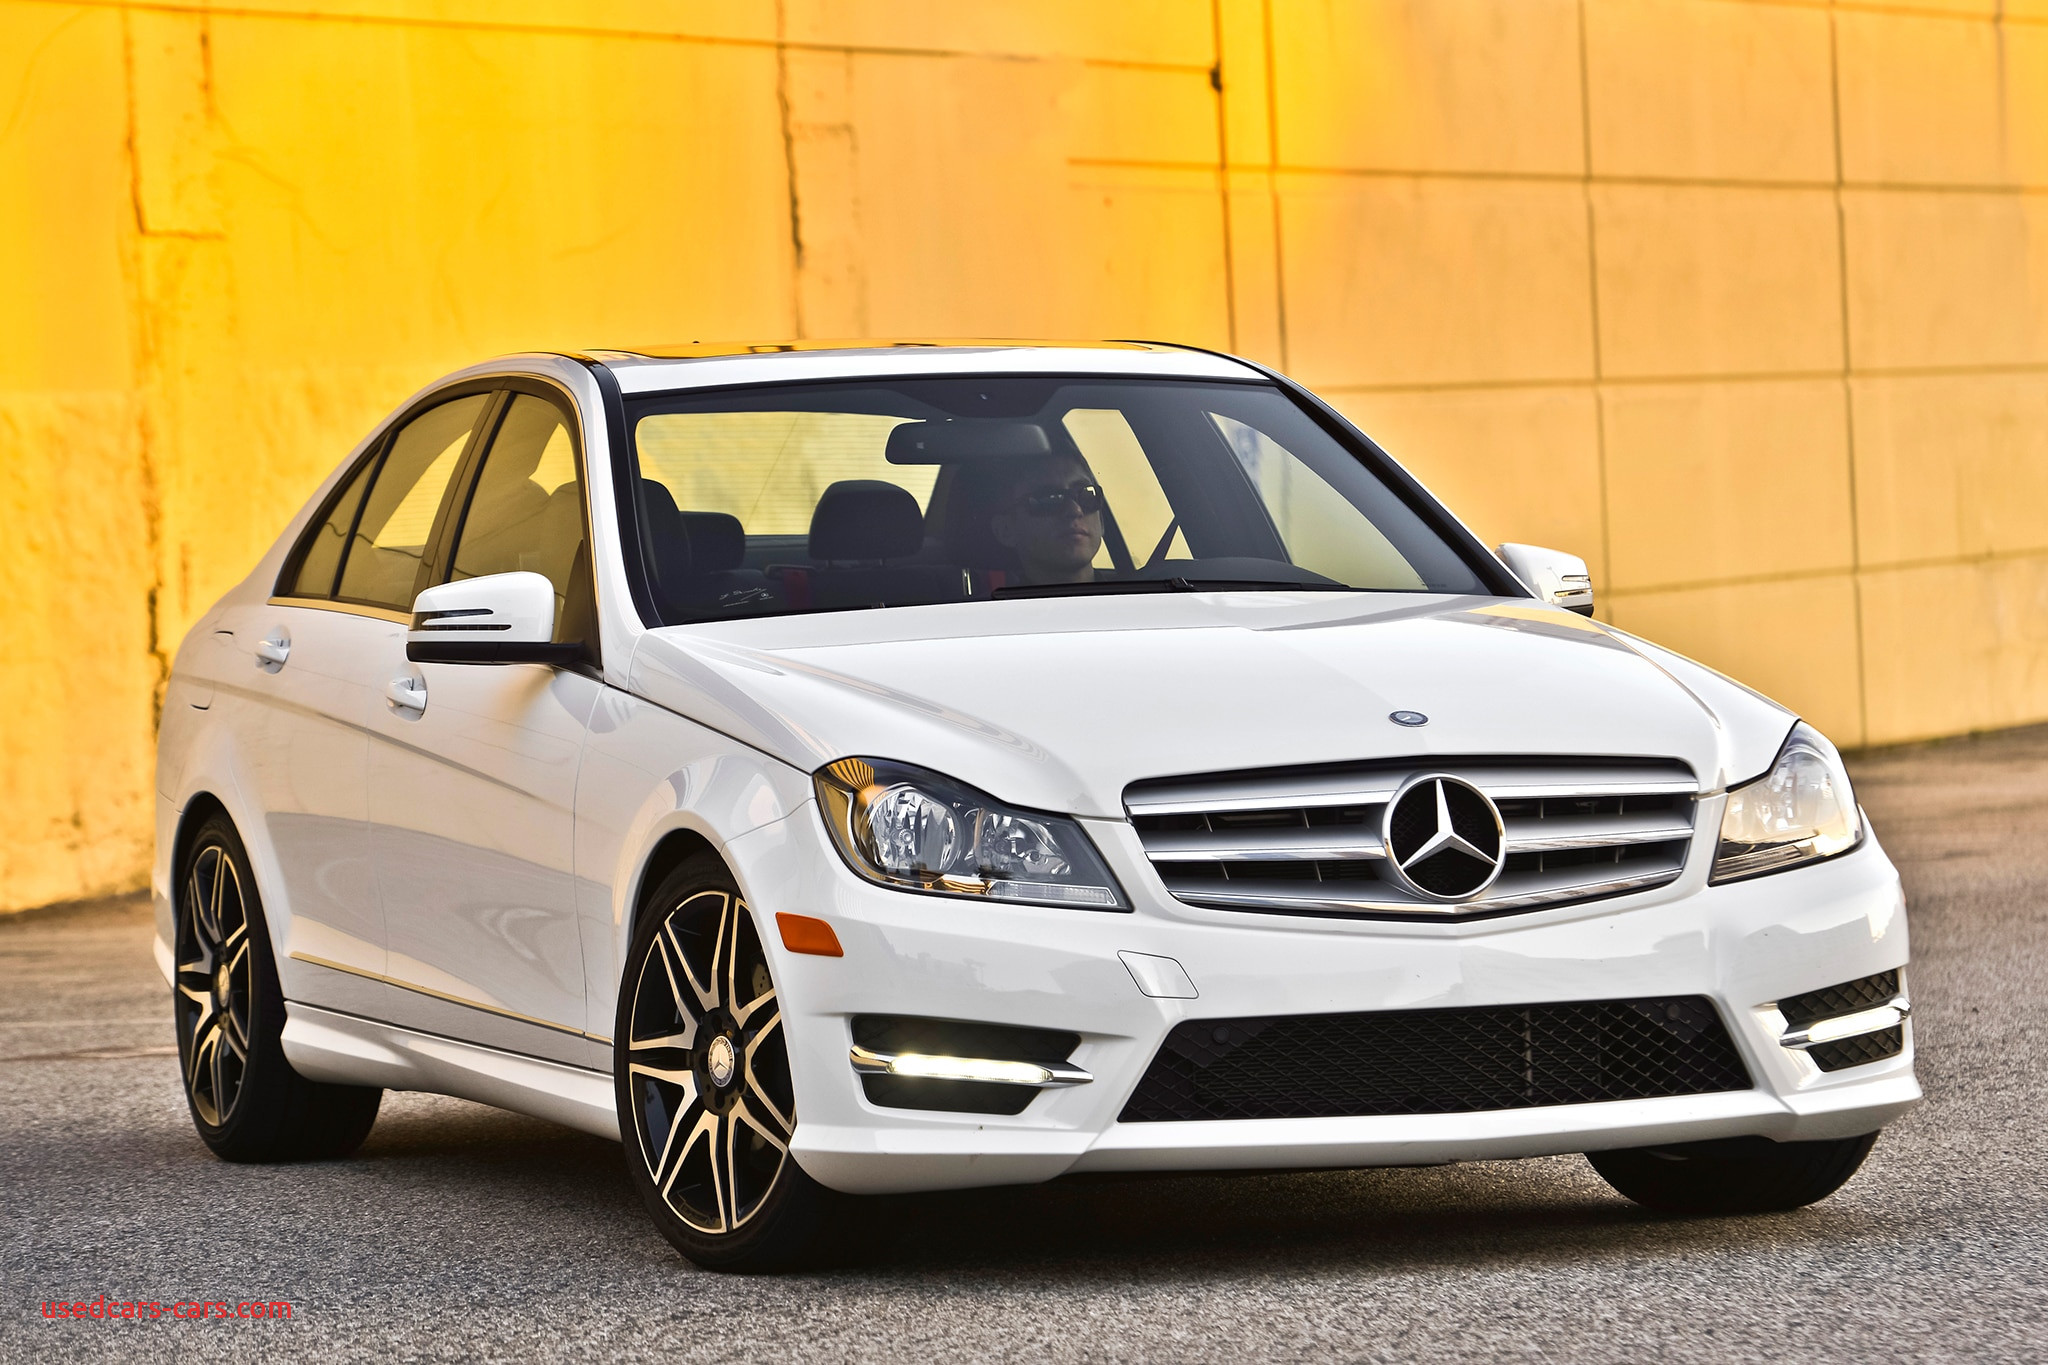 Mercedes C300 4matic Elegant 2013 Mercedes Benz C300 4matic Gains Power Economy M